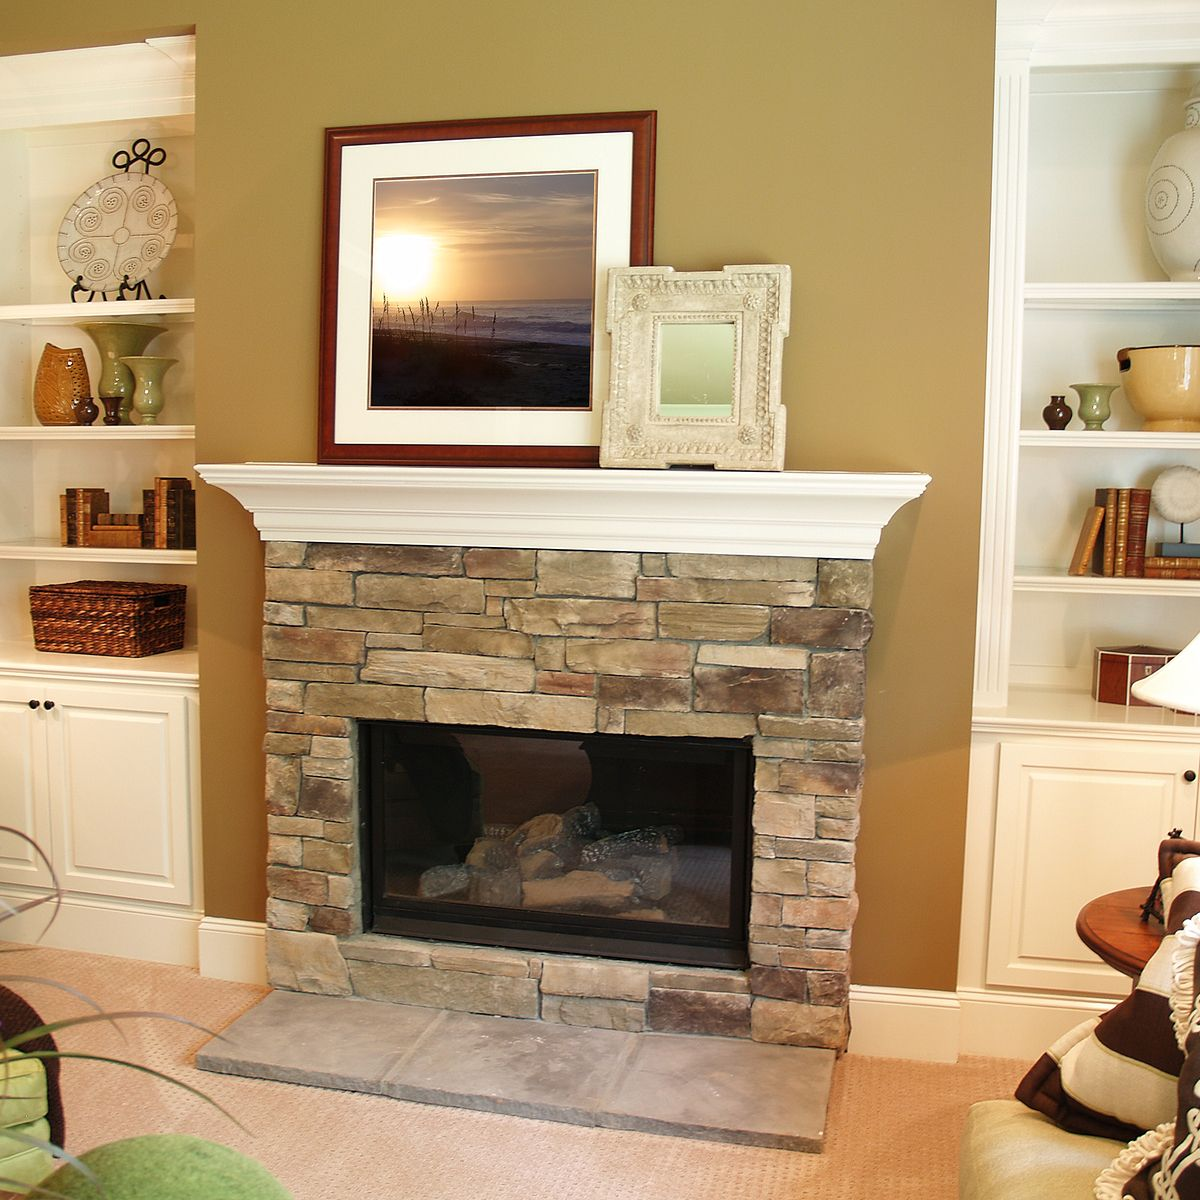 10 Ideas On How To Decorate An Inviting Mantel In 2019